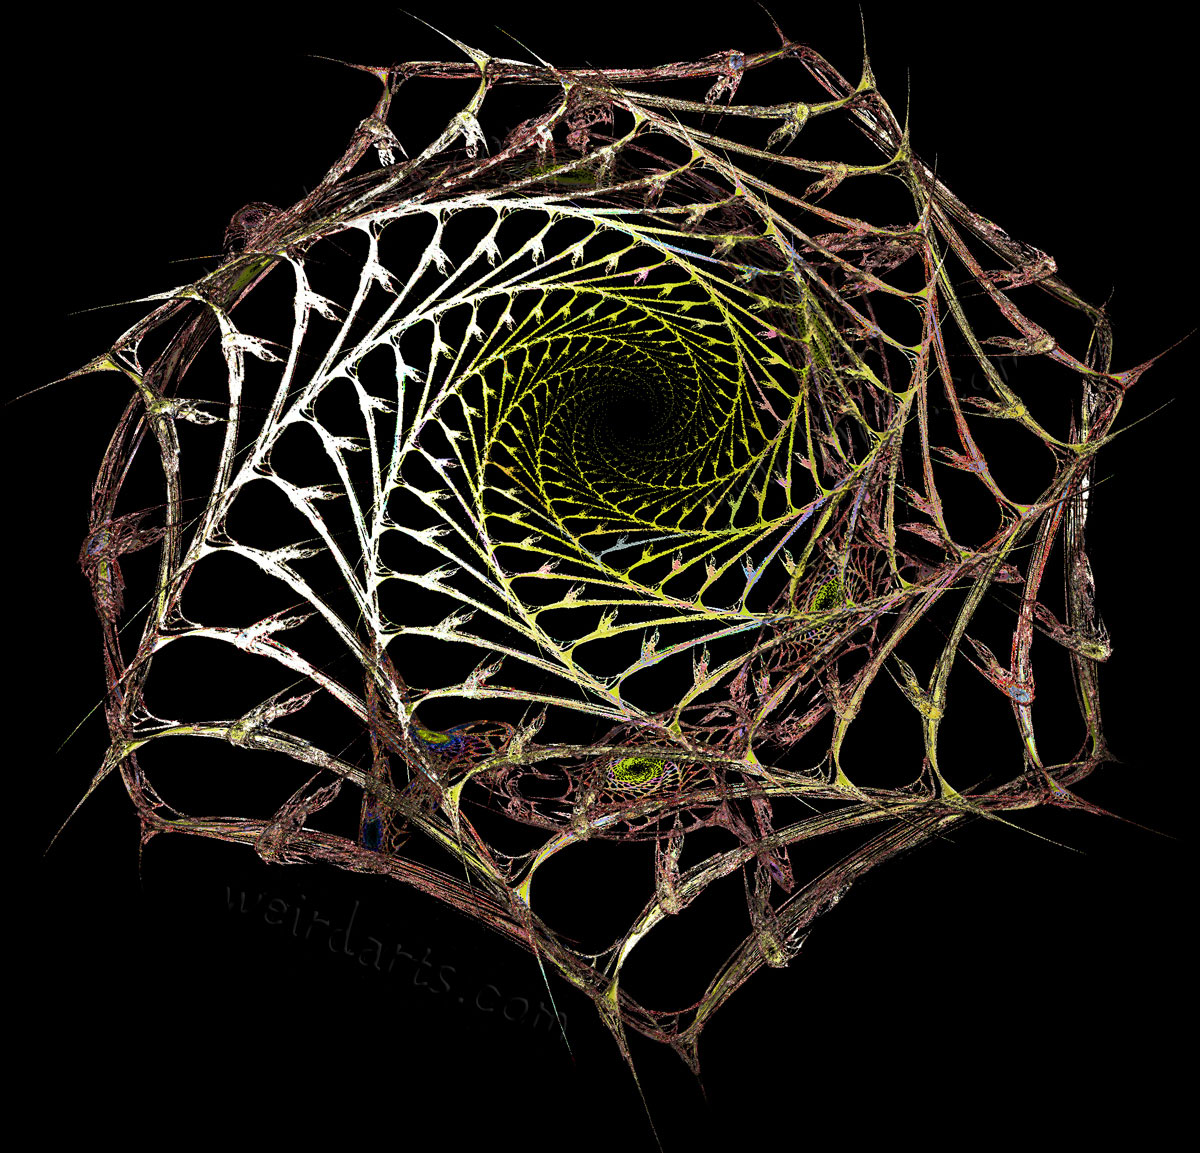 Painted Spider Webs Dont Look Any Less Scary   Randommization